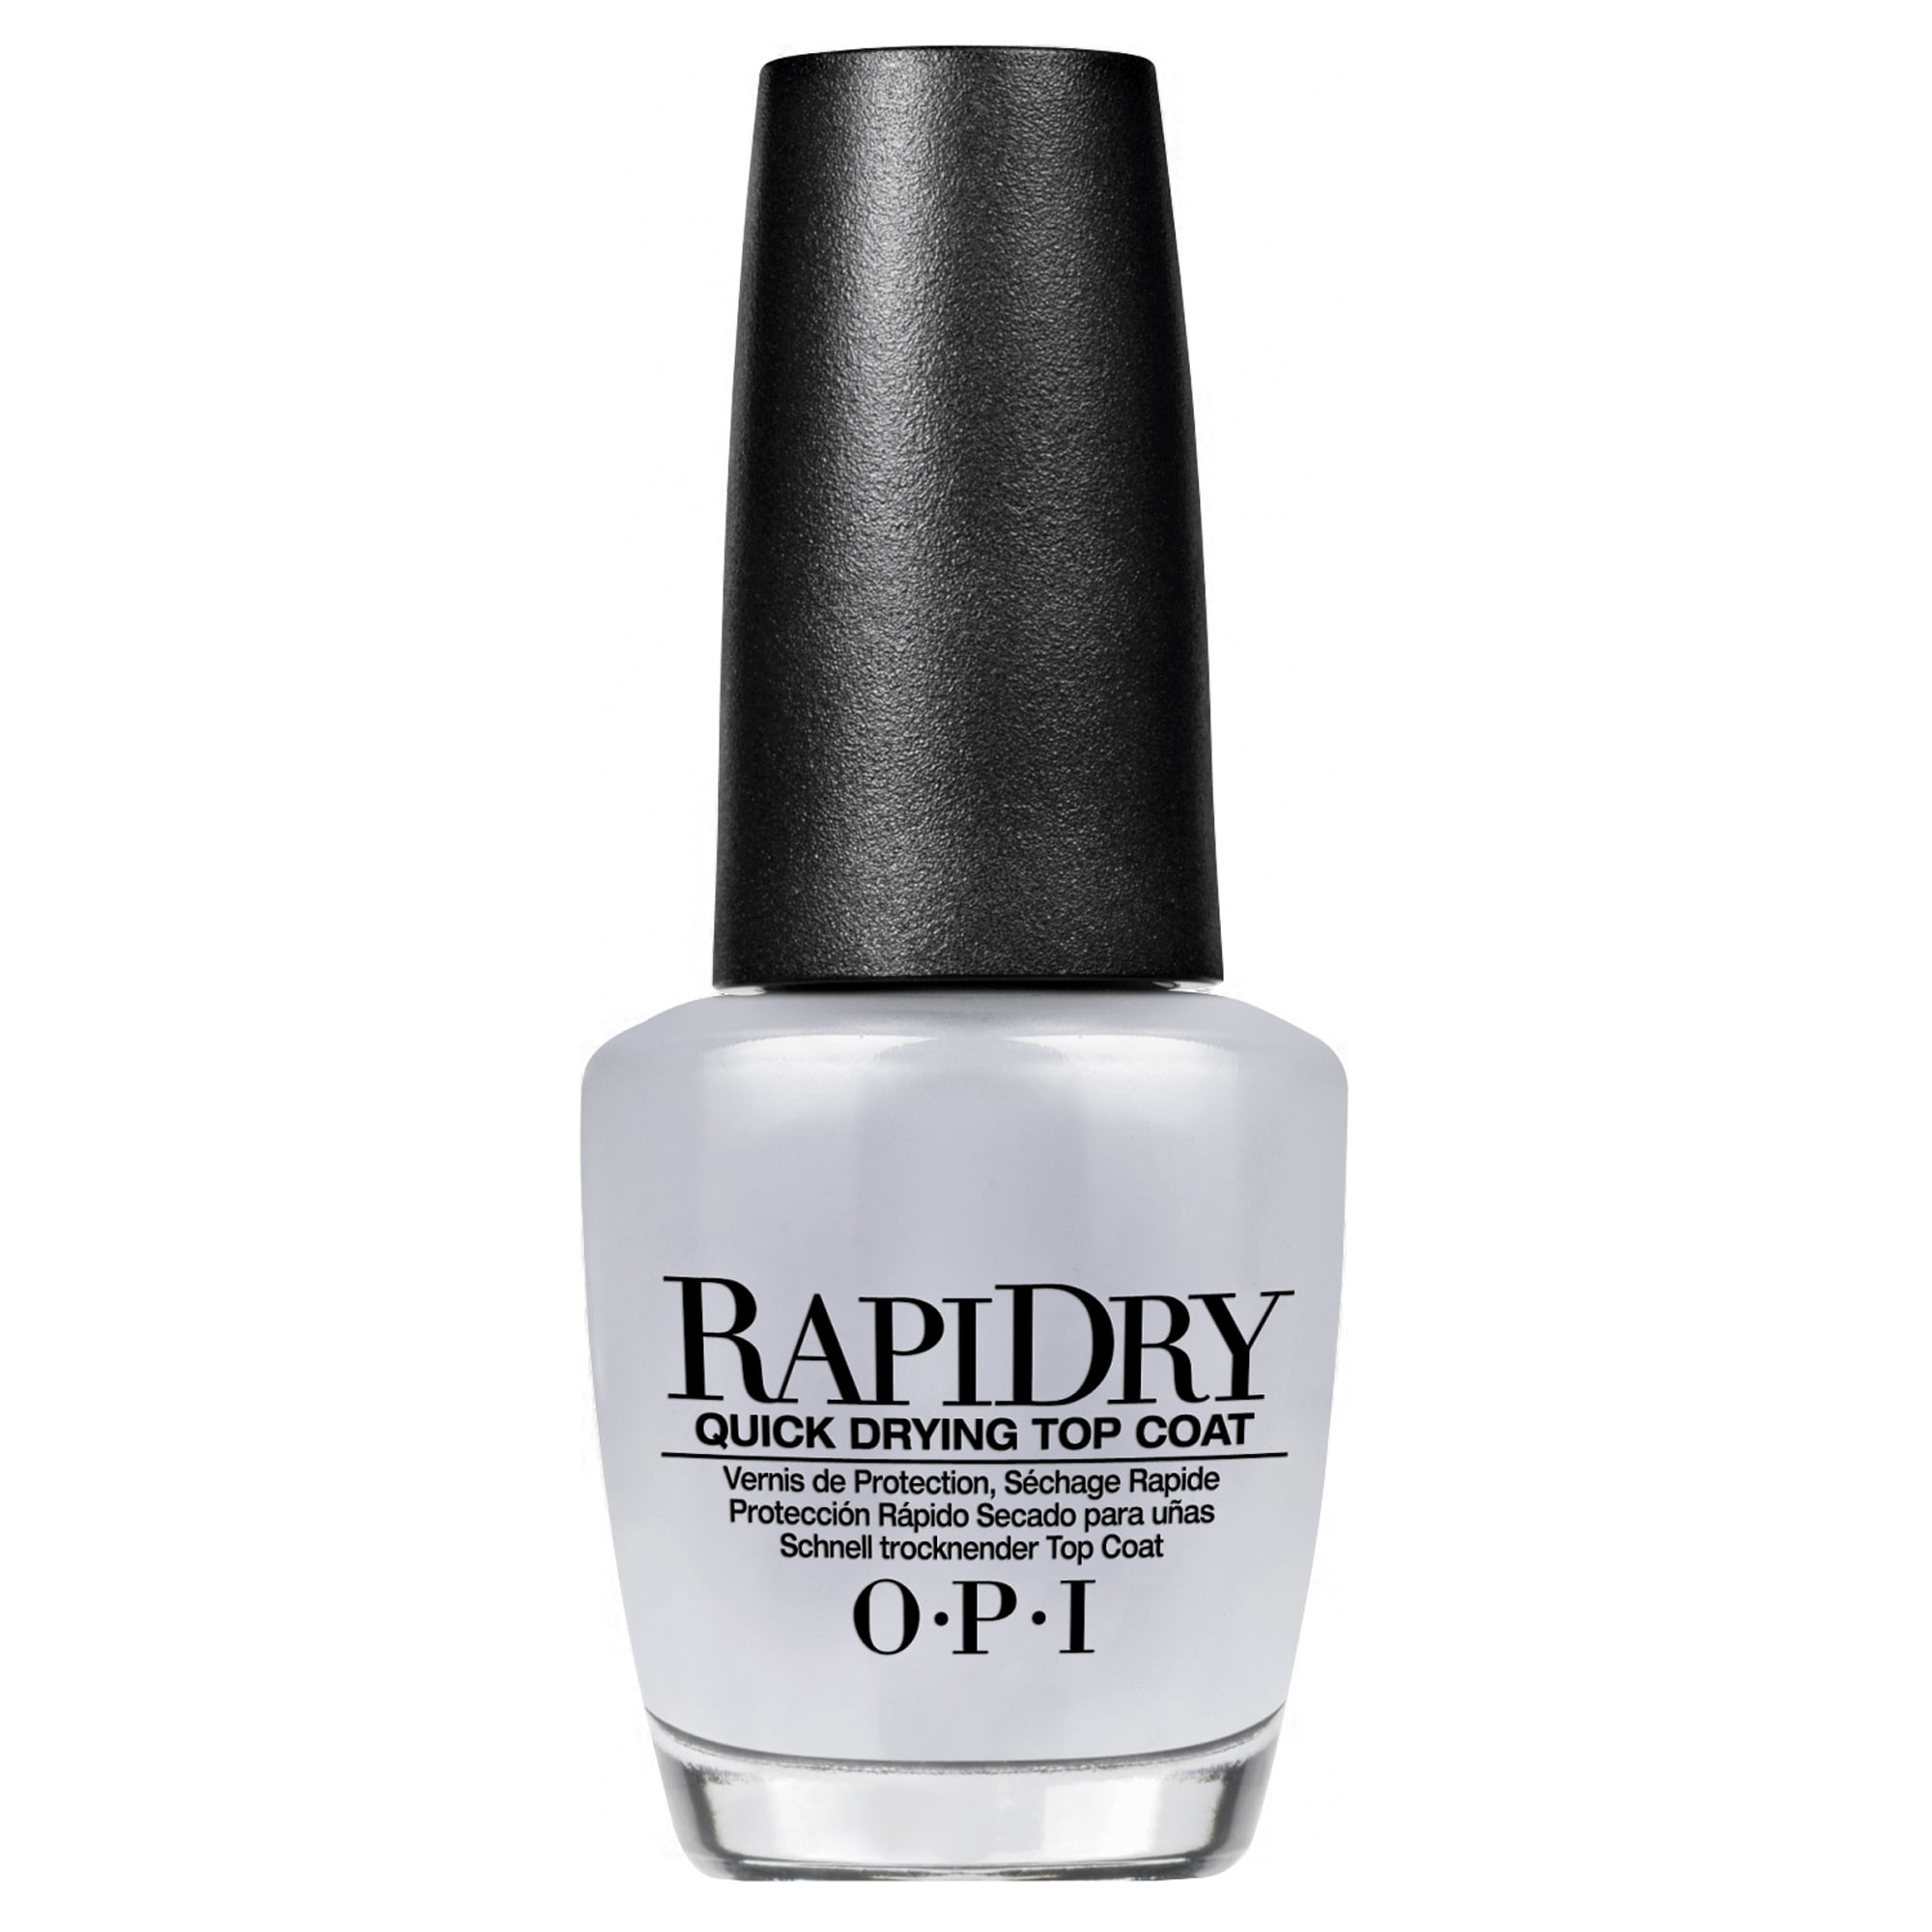 opi mini treat rapidry top coat quick dry top coat. Black Bedroom Furniture Sets. Home Design Ideas